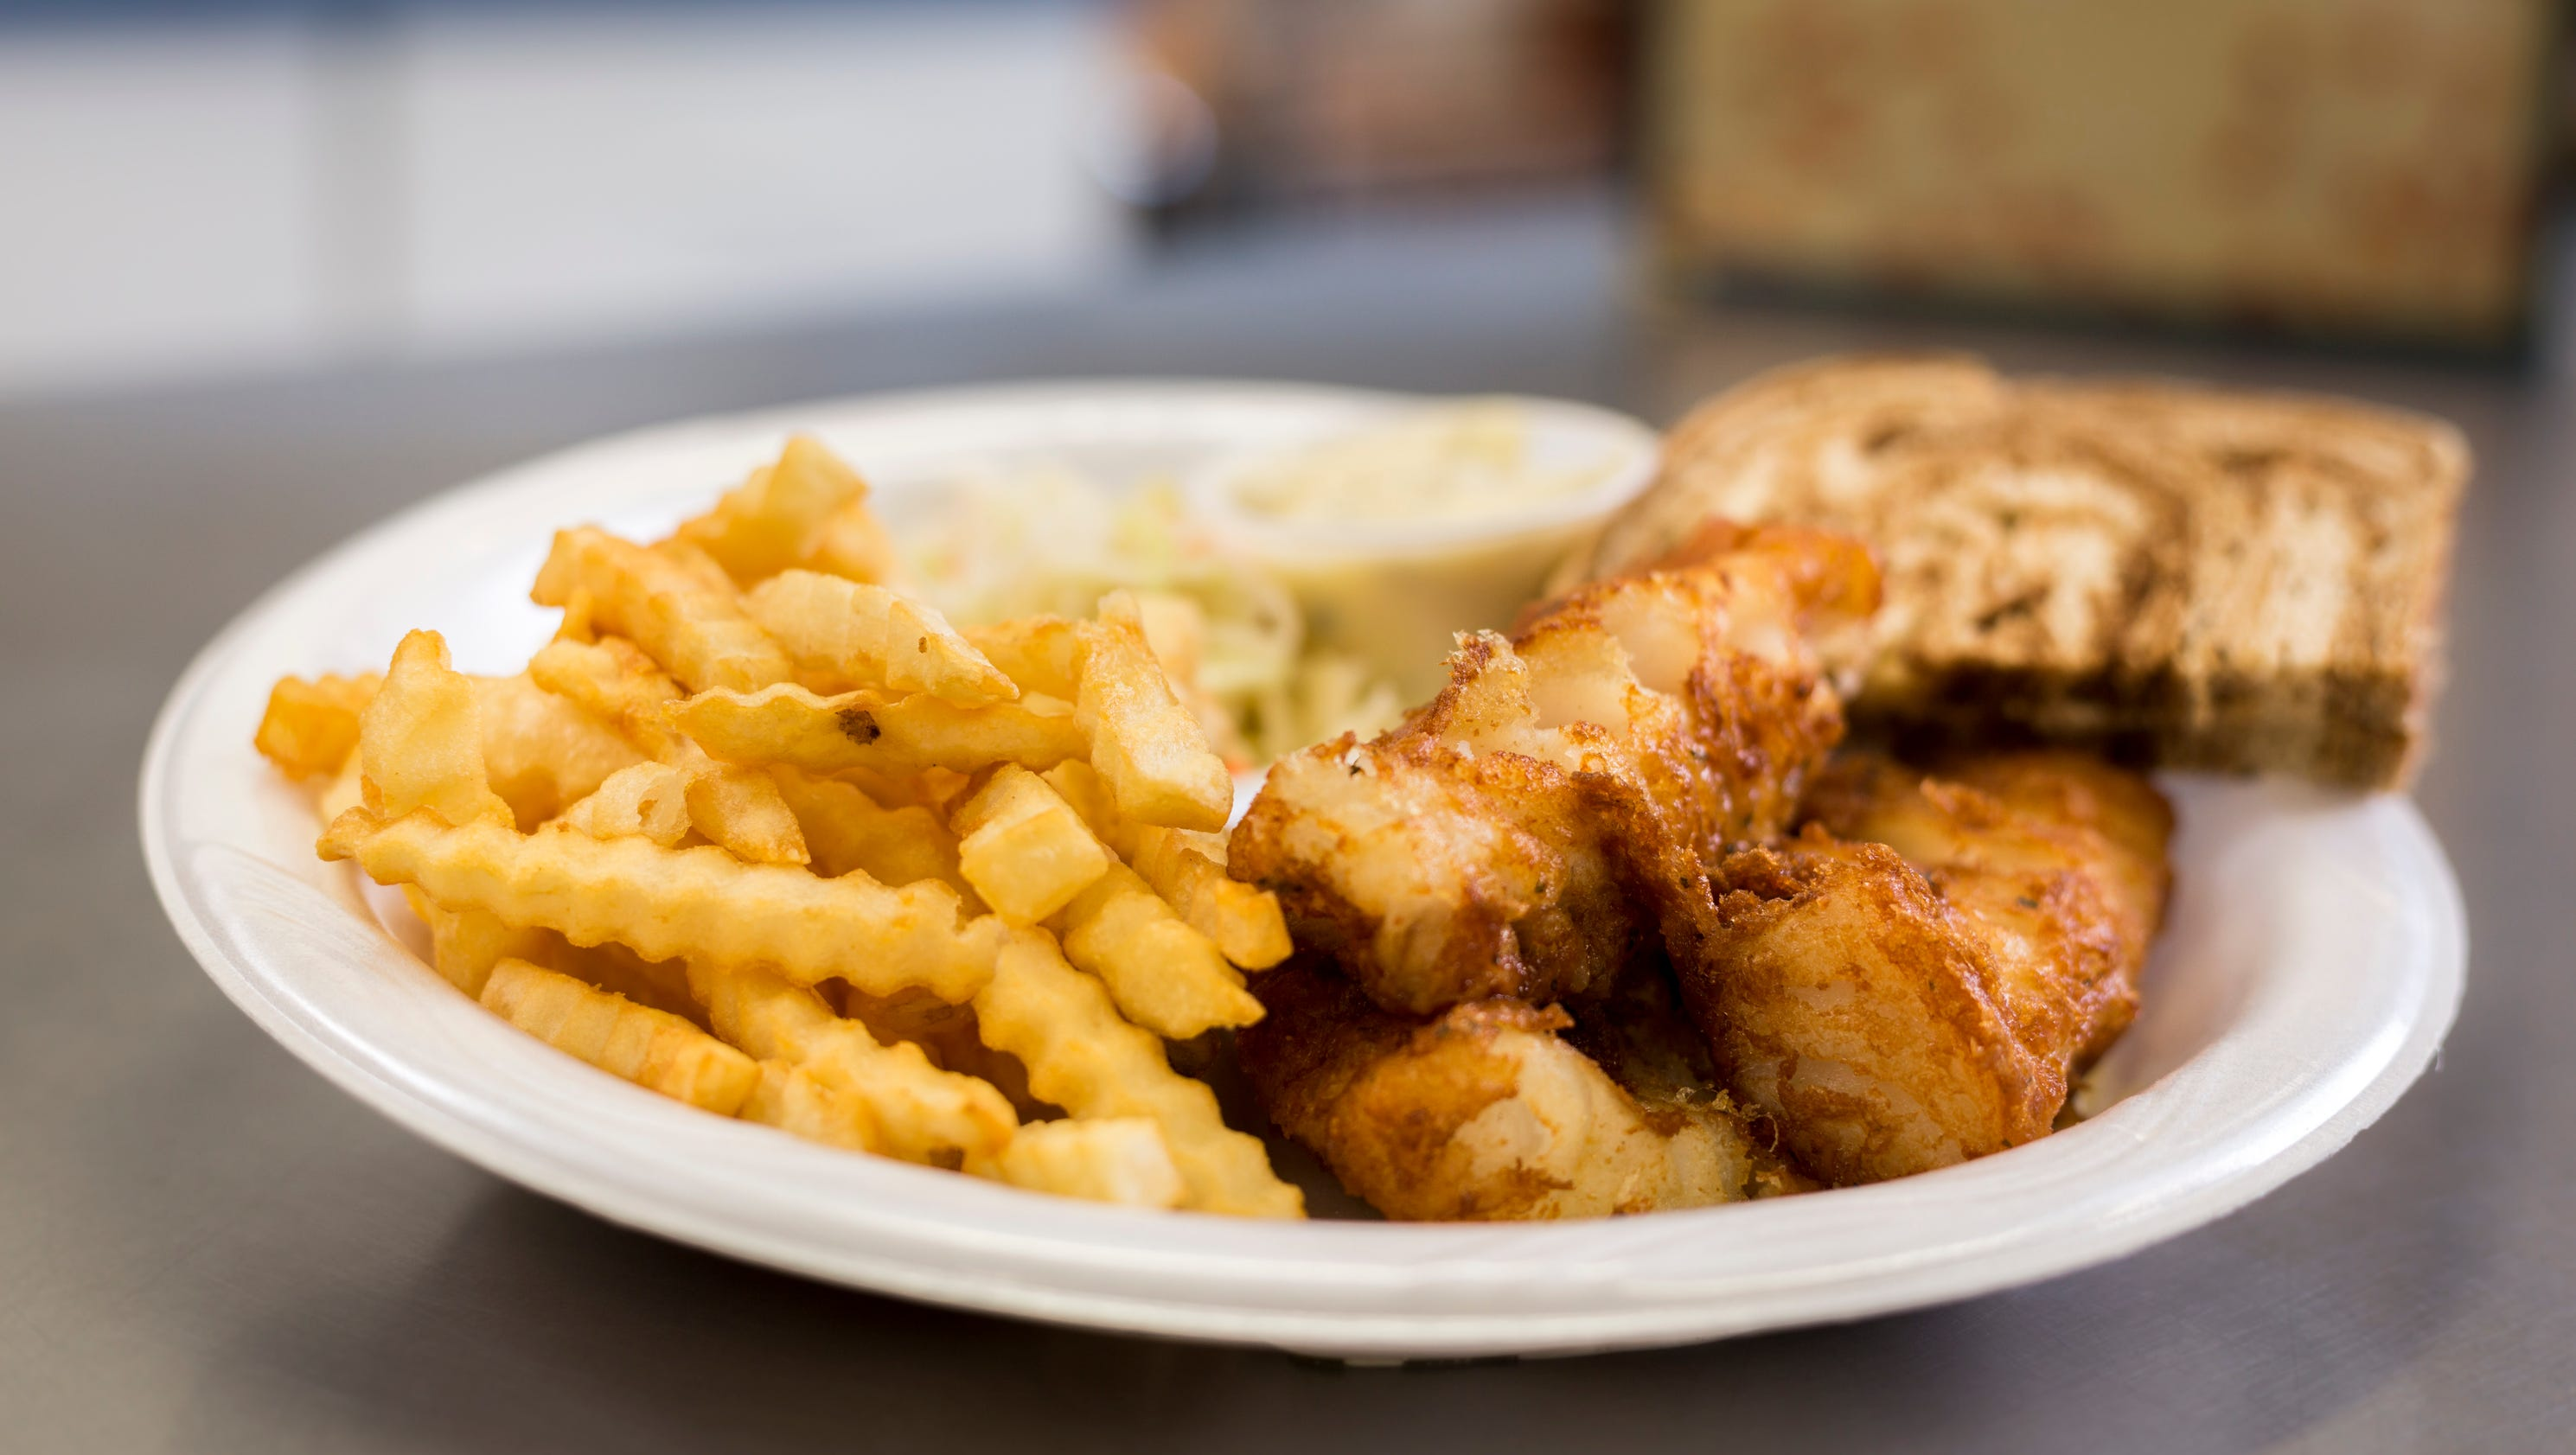 Owners pleased as punch with fish fry results for Fish fry in my area